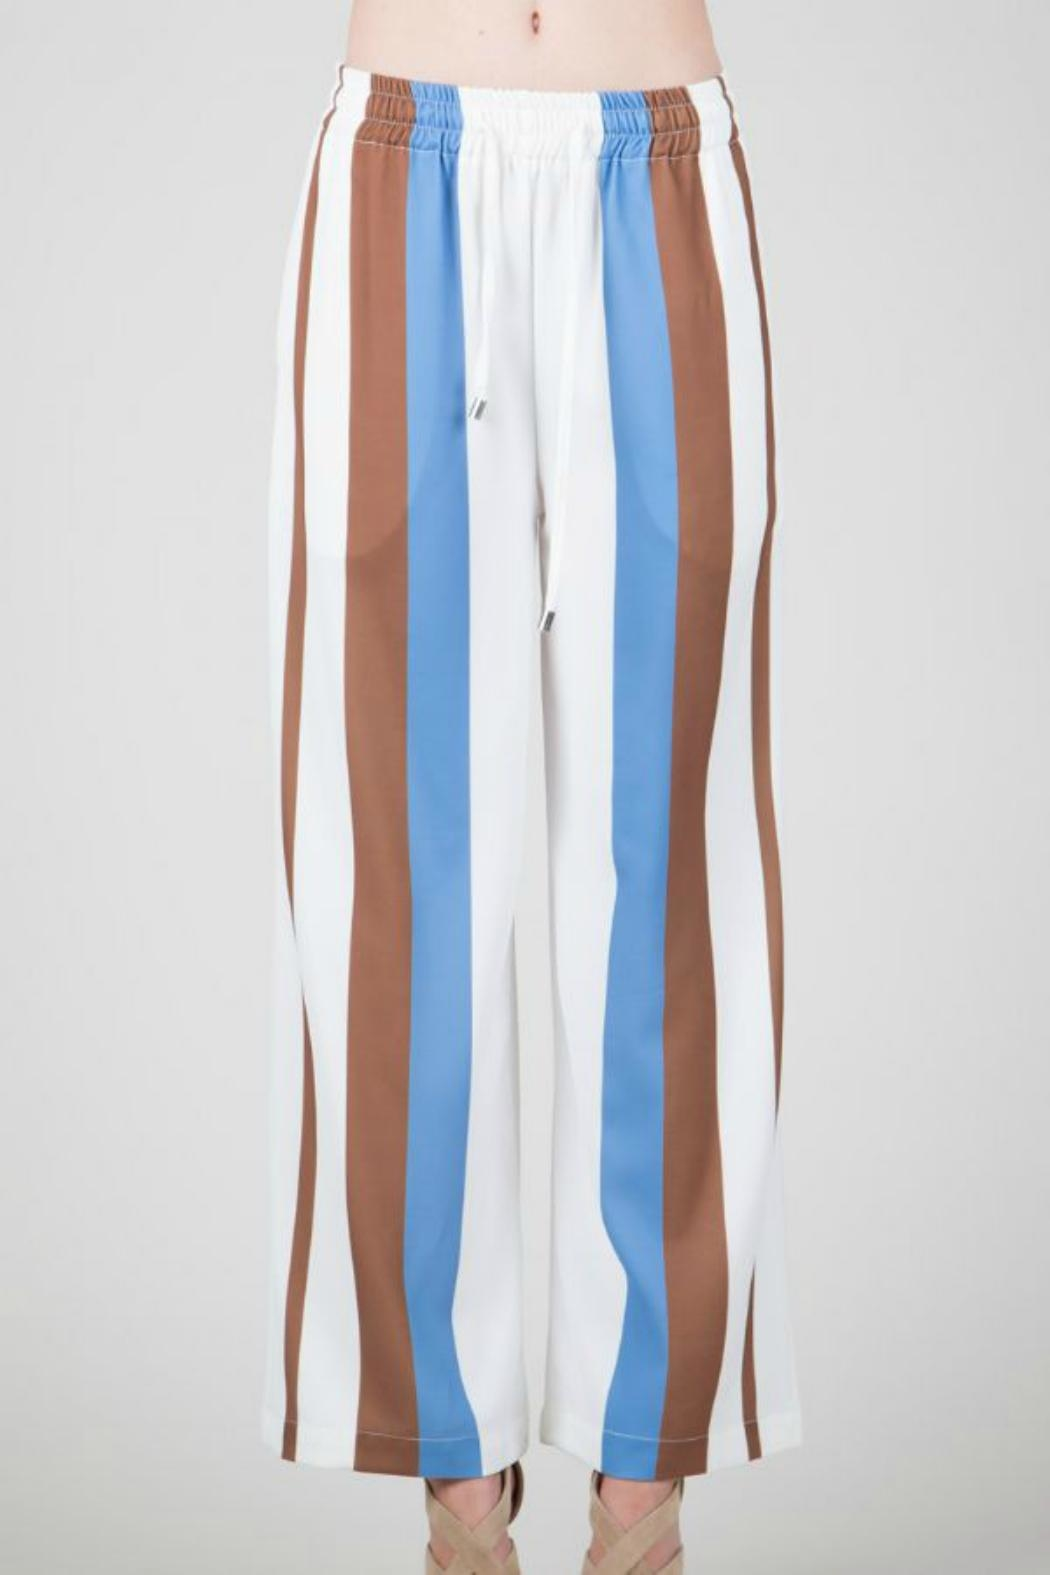 BEULAH STYLE Sporty Crepe Trousers - Main Image